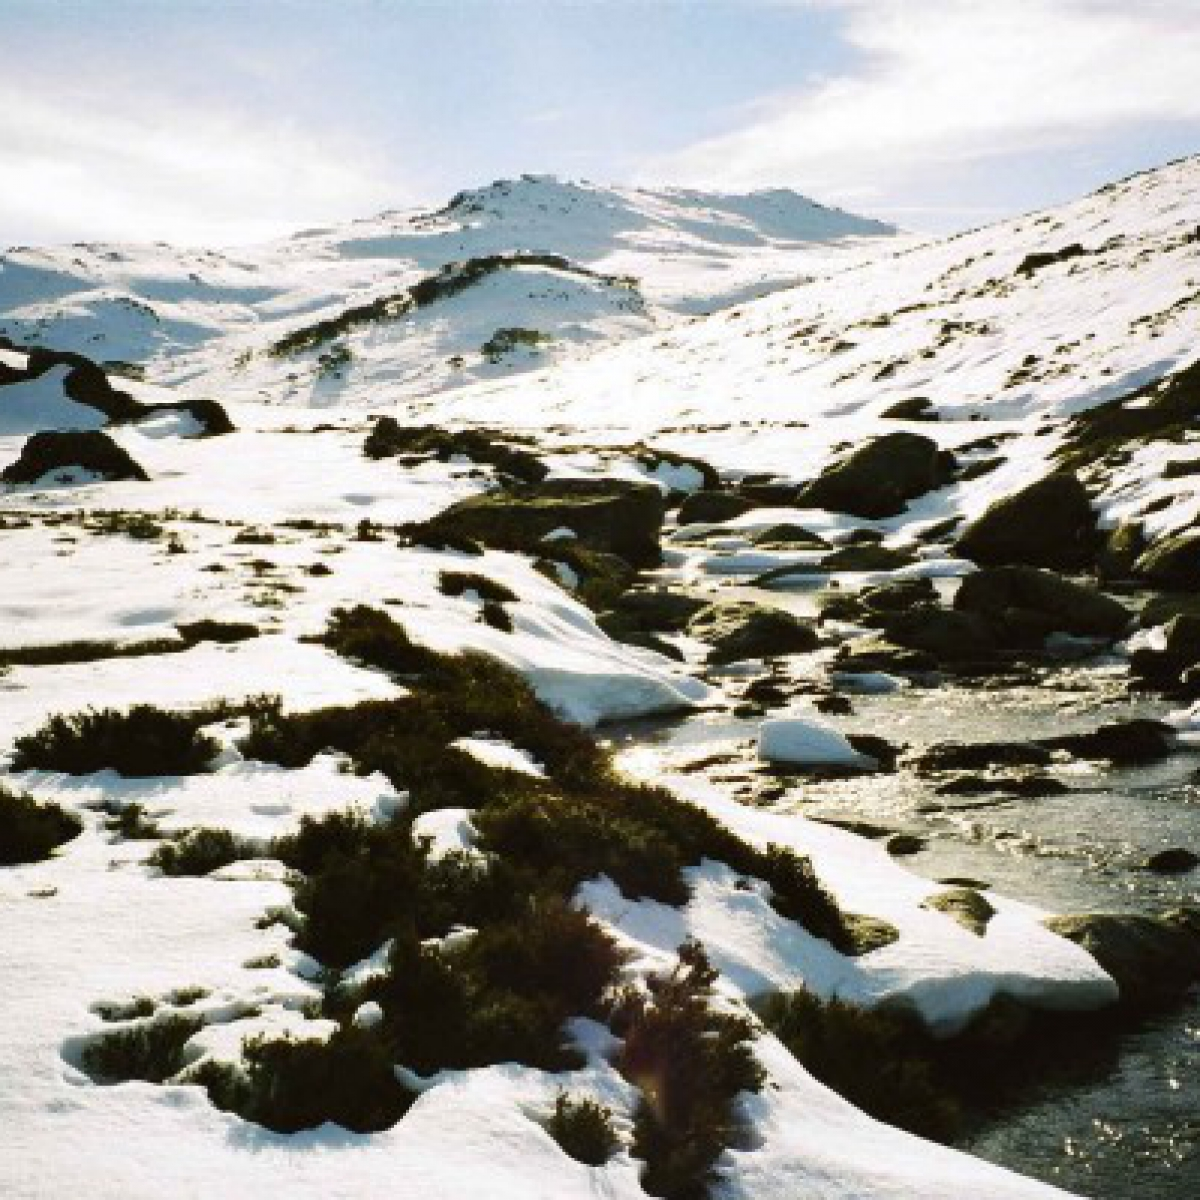 Spencer Creek, Kosciuszko NP